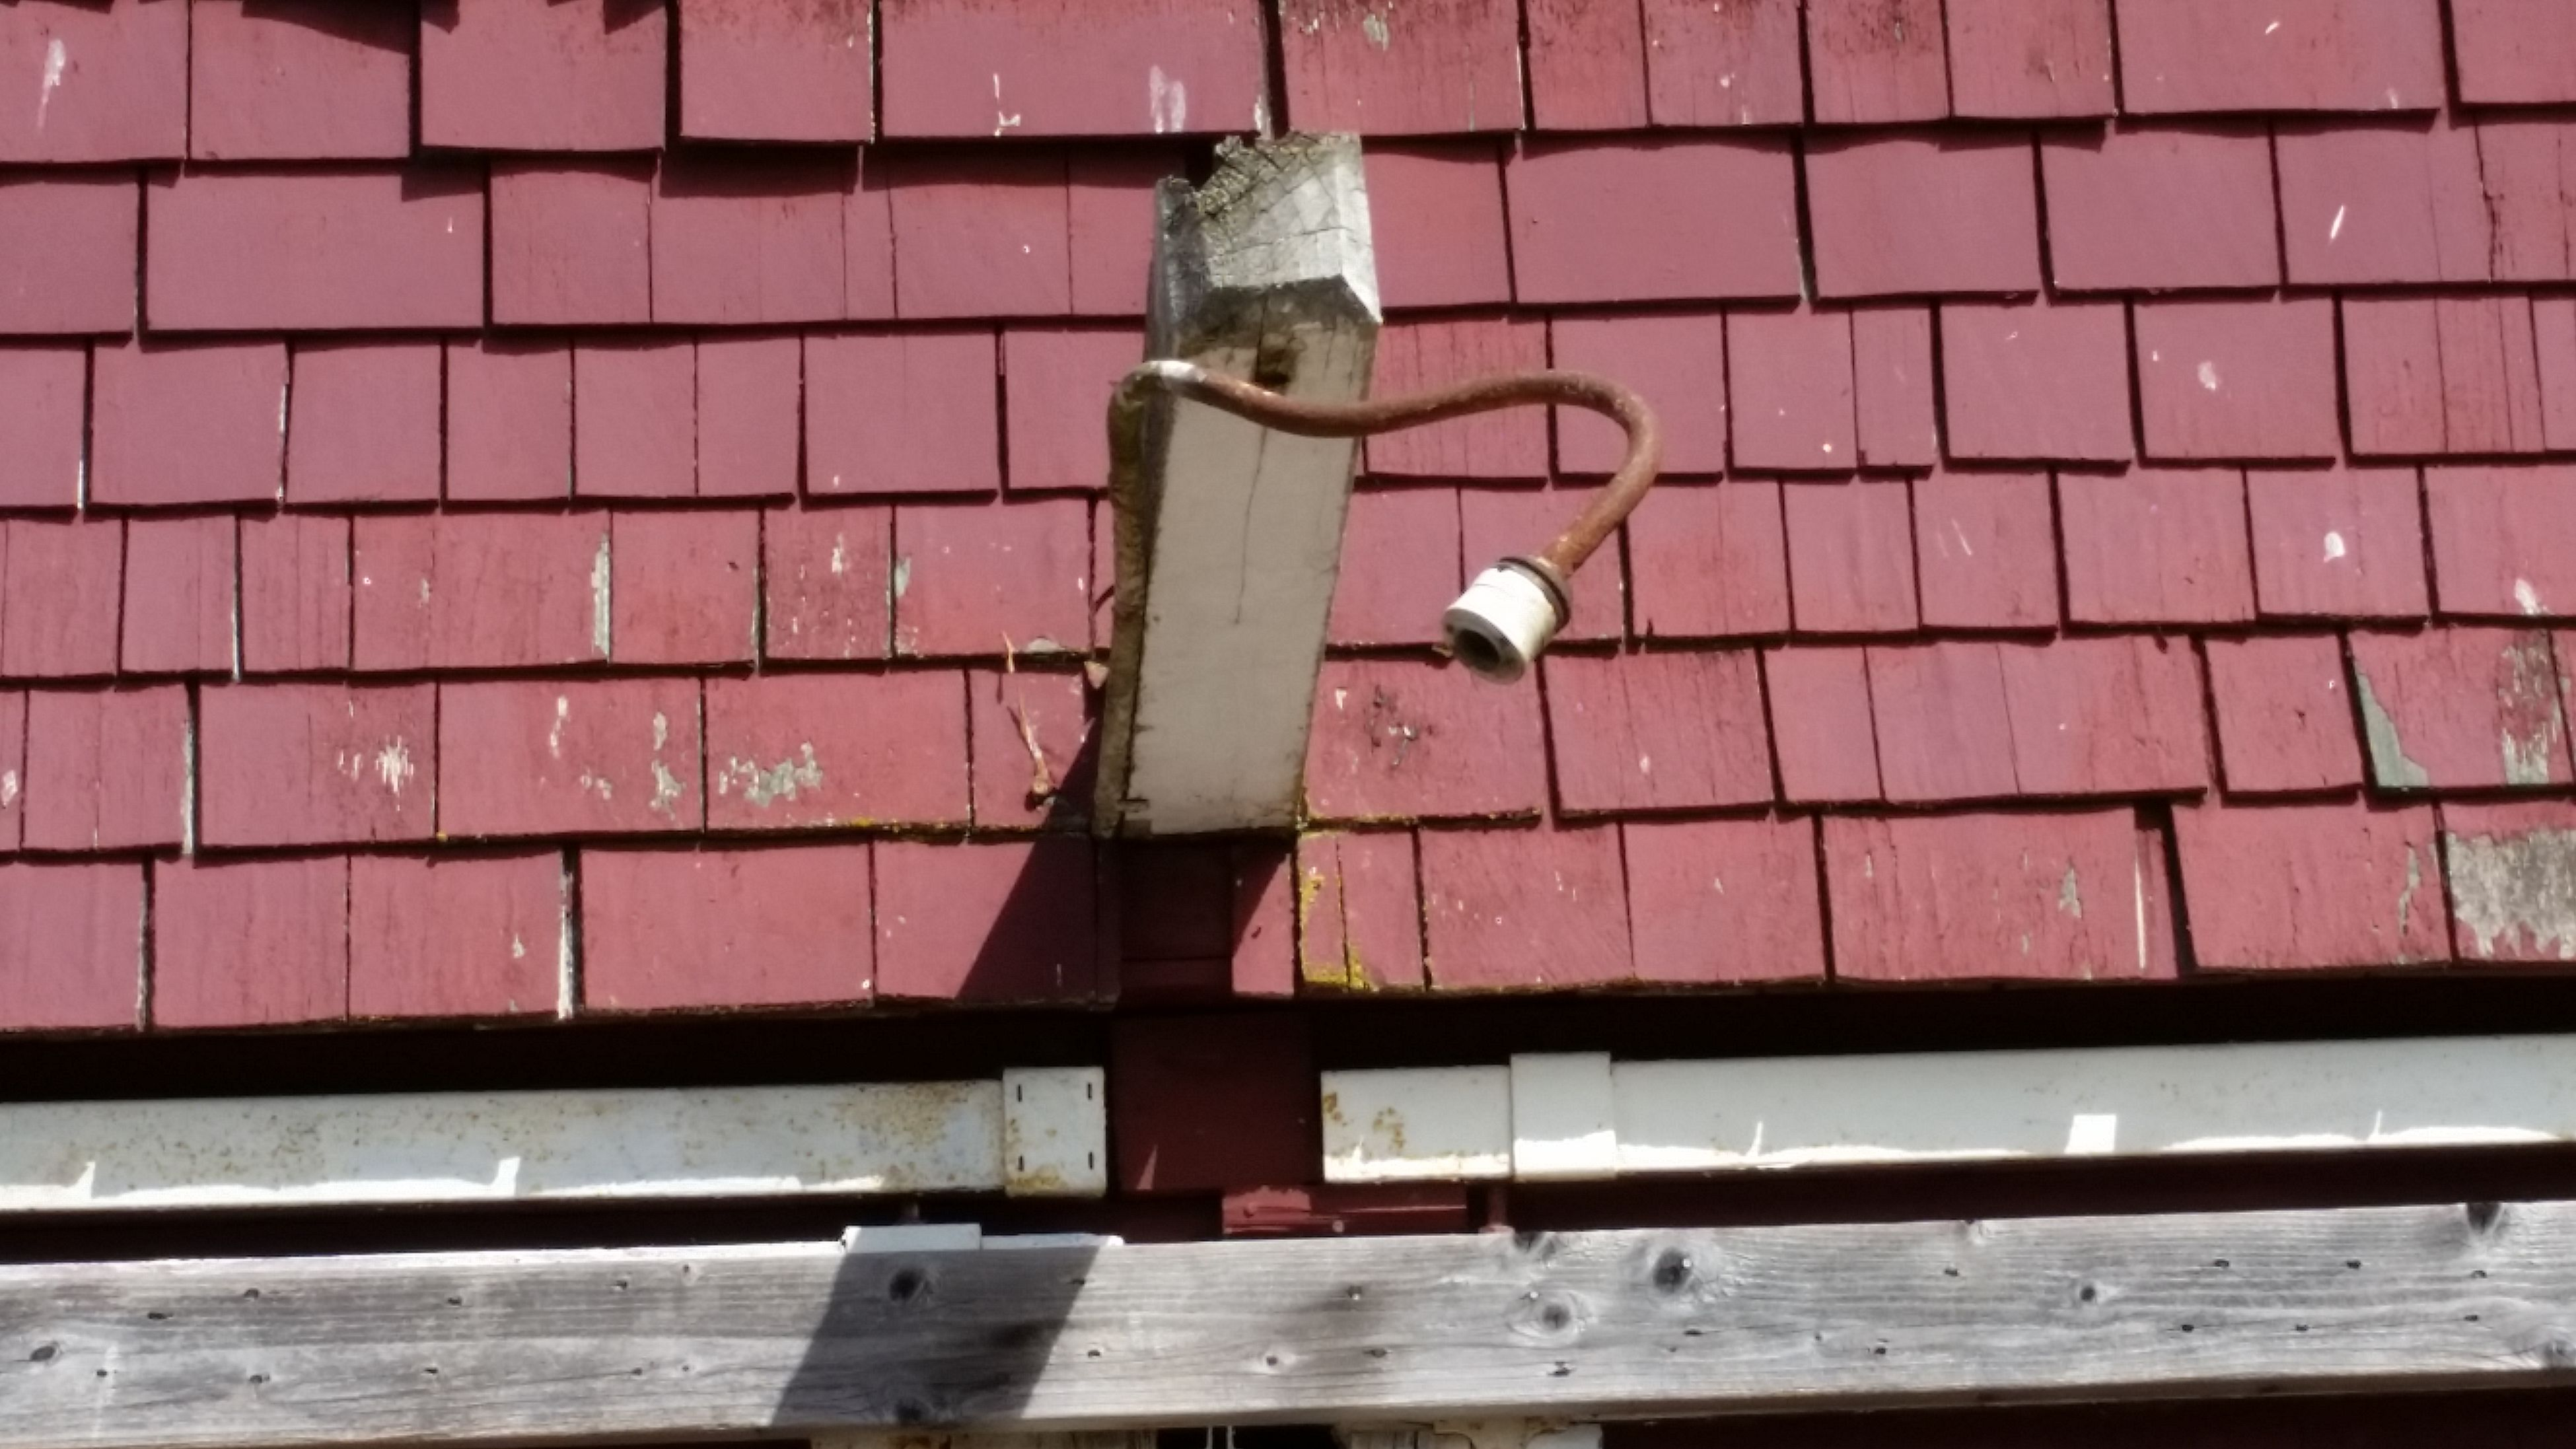 Old Light Fixture On Red Barn. Red Shingles, Antique Light/lamp On Red Building. Abandoned Building. Arural.Rustic.